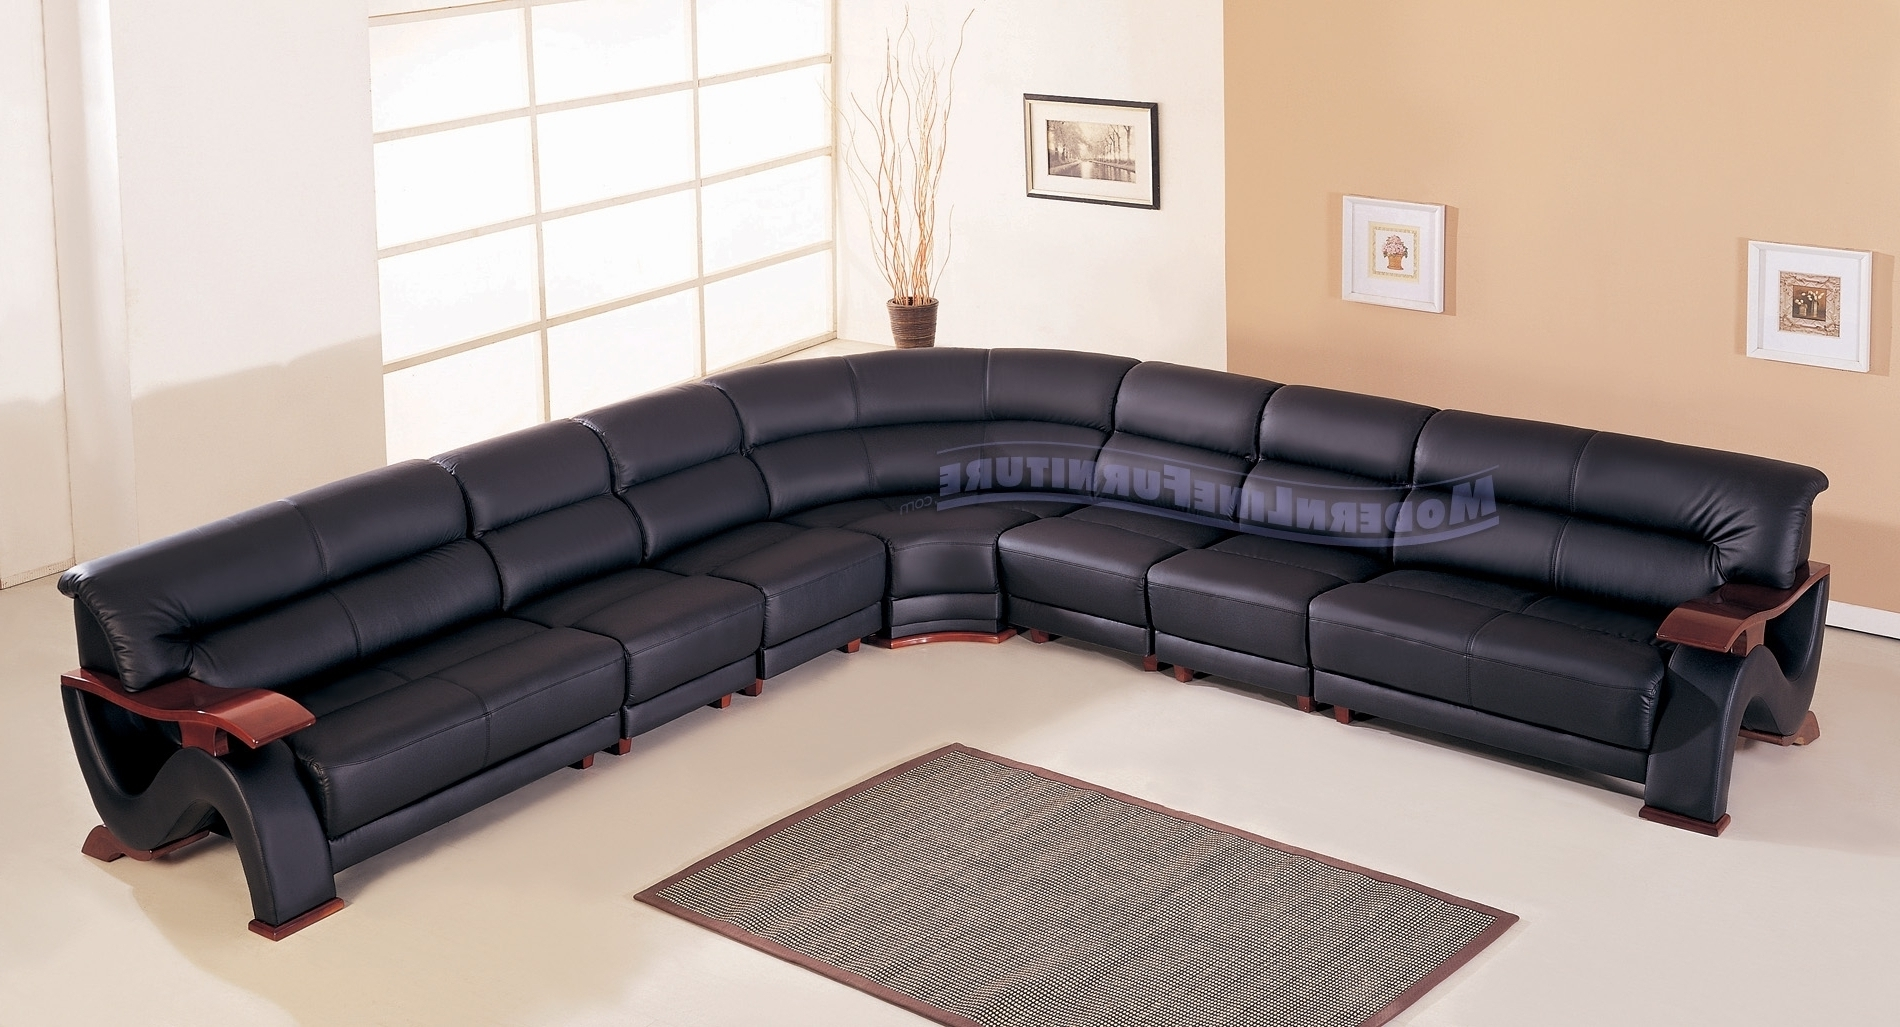 Amazing Custom Made Sectional Sofas – Mediasupload Throughout Widely Used Custom Made Sectional Sofas (View 1 of 15)